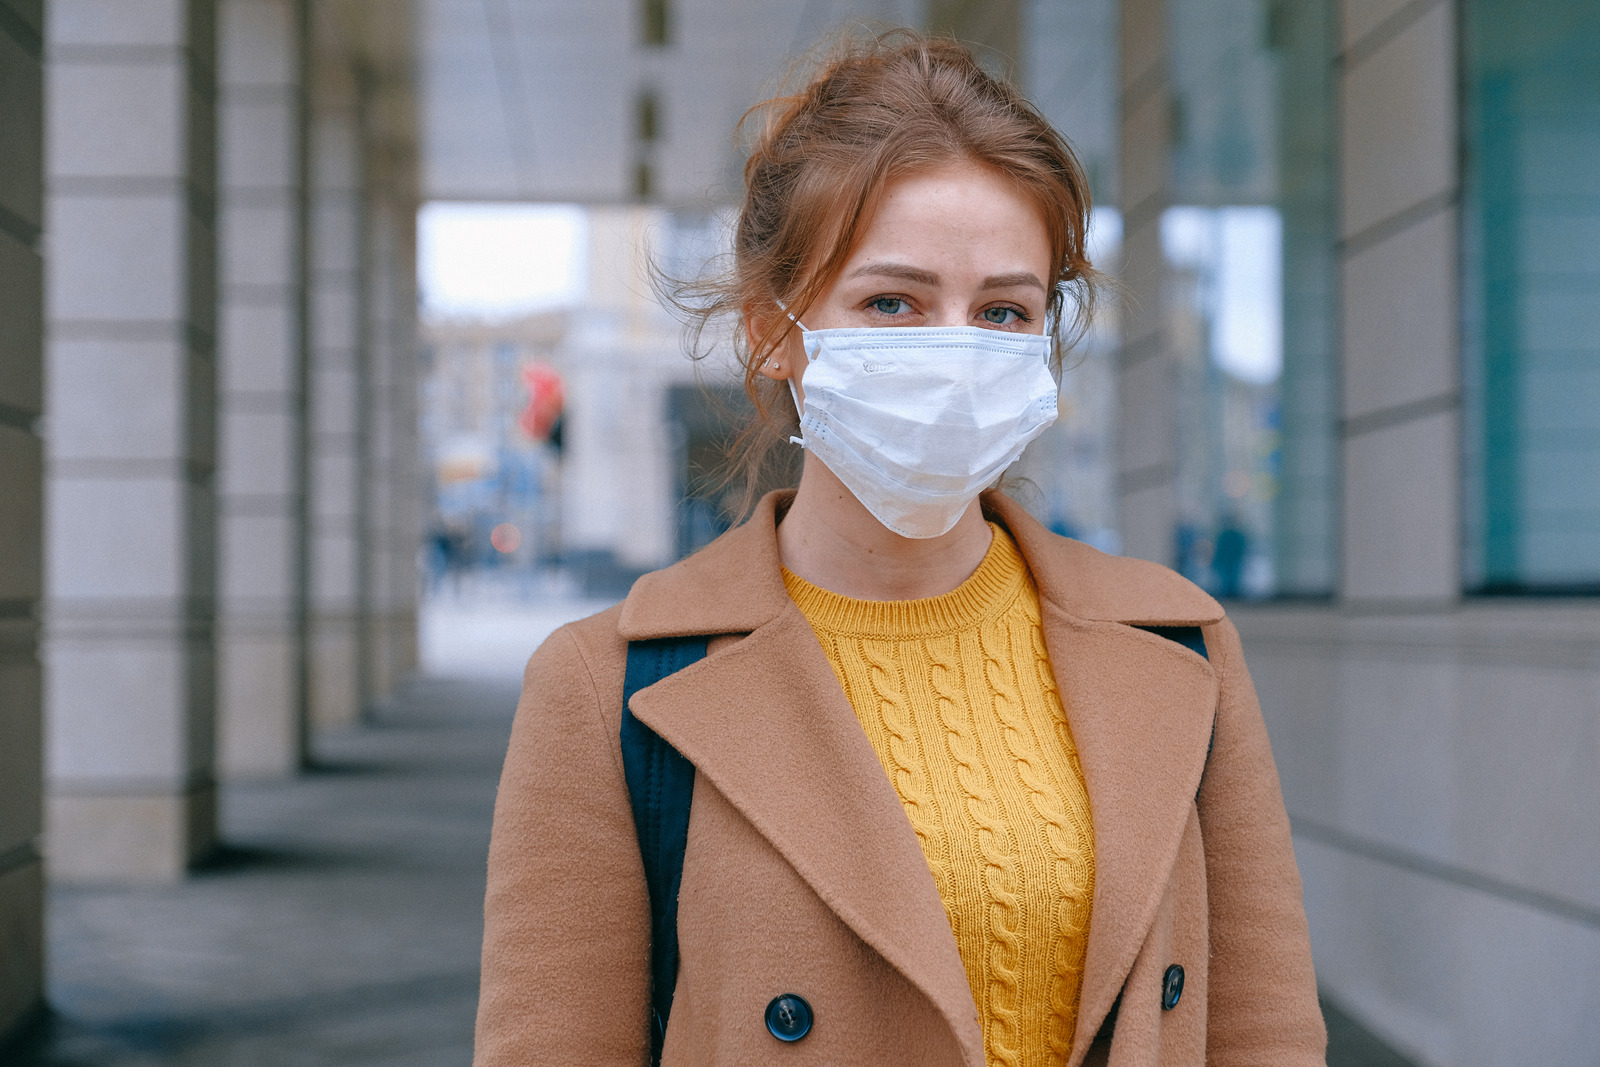 Image of a woman wearing a face mask